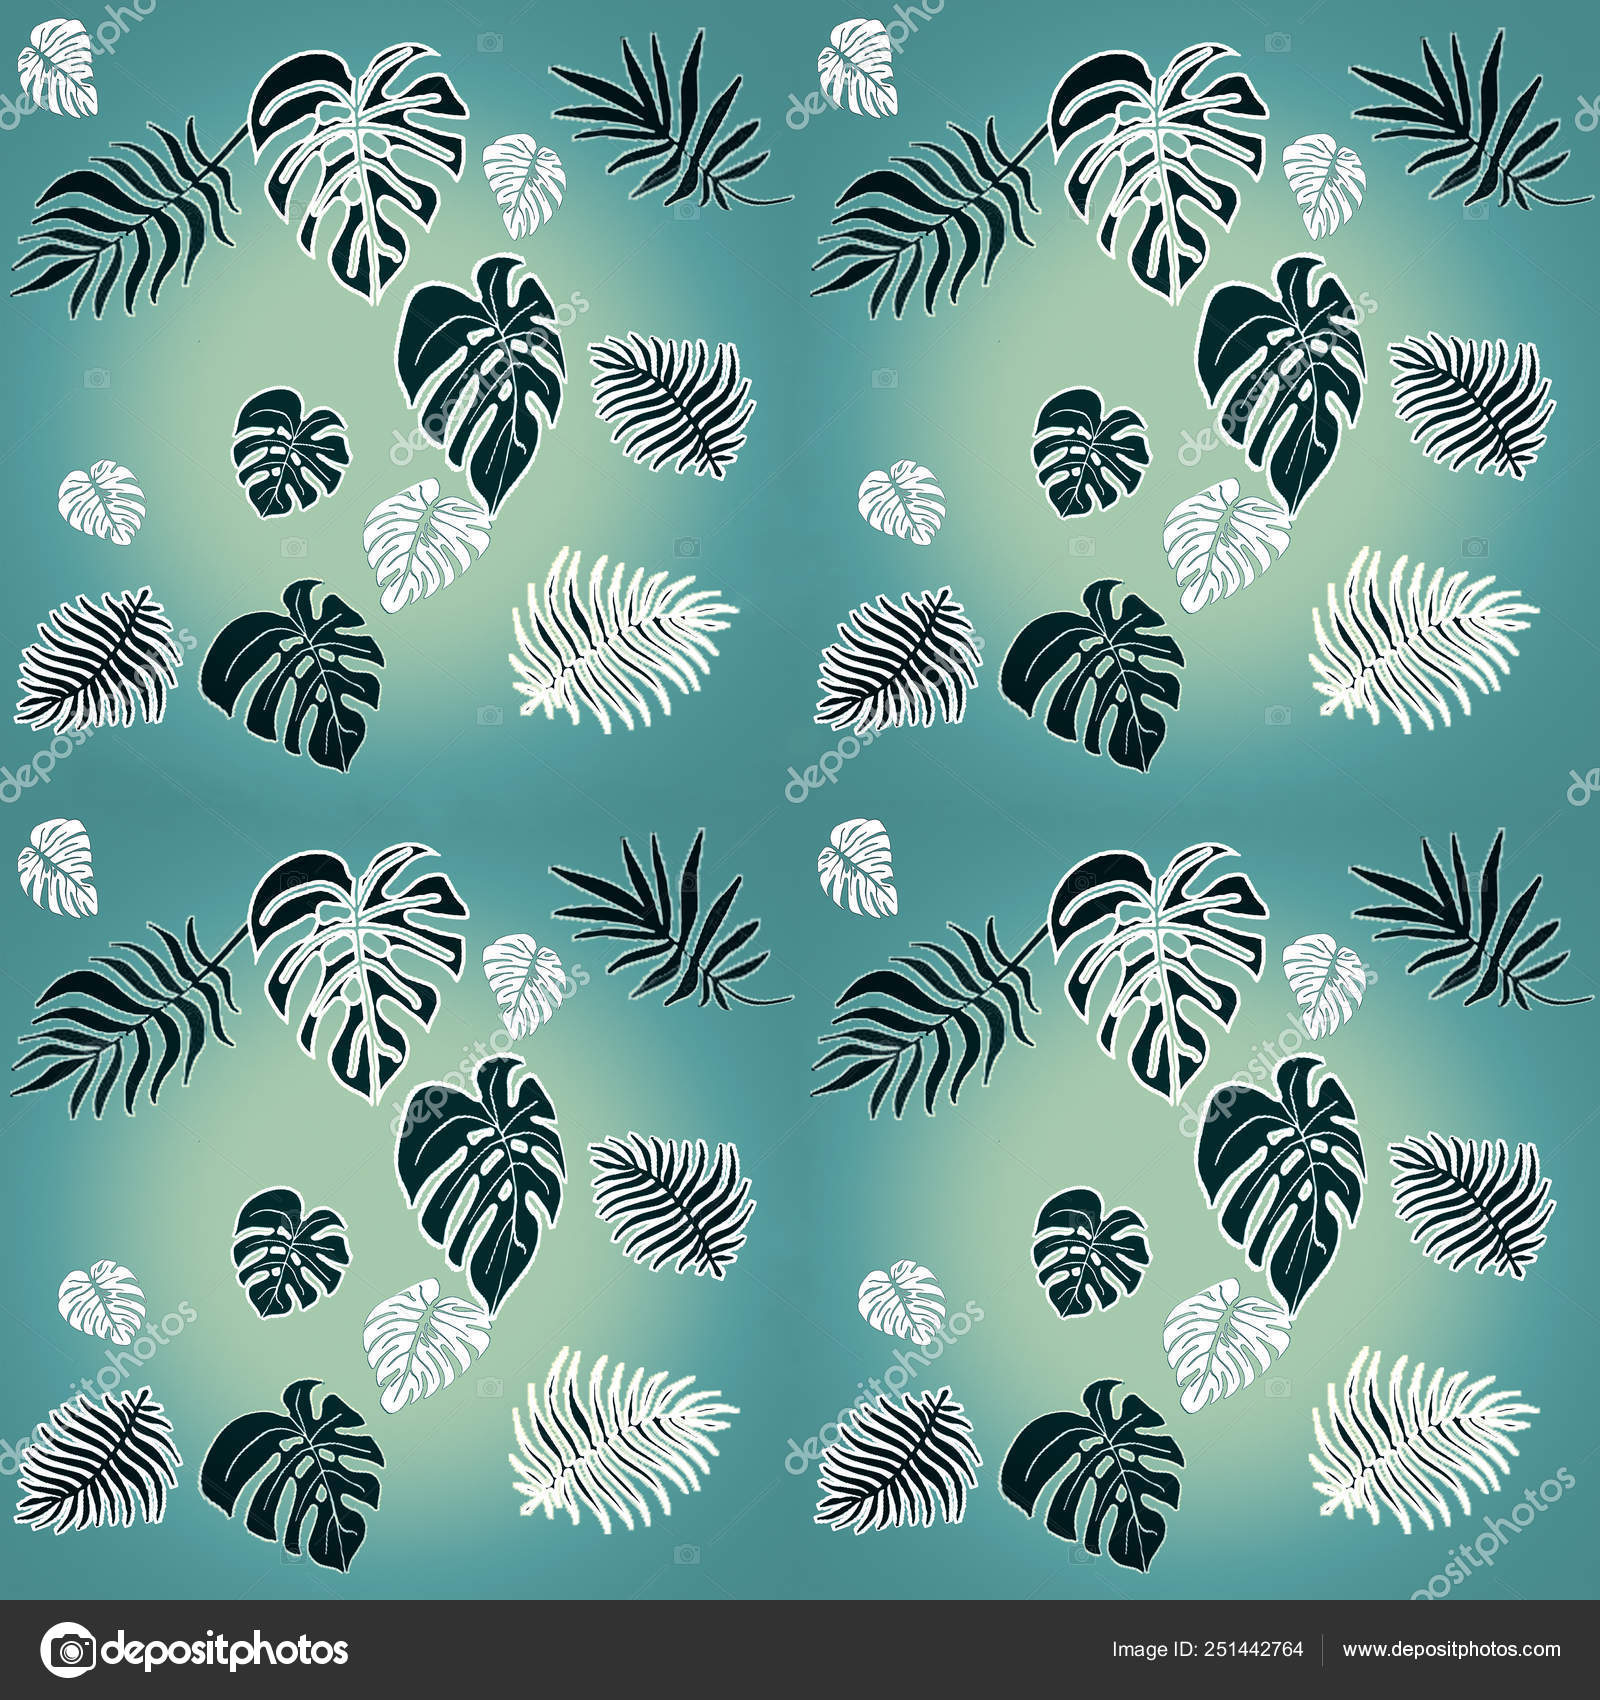 Tropical Green Leaves Seamless Pattern Pink Background Exotic Wallpaper Stock Photo C Ttyz Mail Ua 251442764 Here you can explore hq tropical leaves transparent illustrations, icons and clipart with filter setting like size, type, color etc. https depositphotos com 251442764 stock photo tropical green leaves seamless pattern html